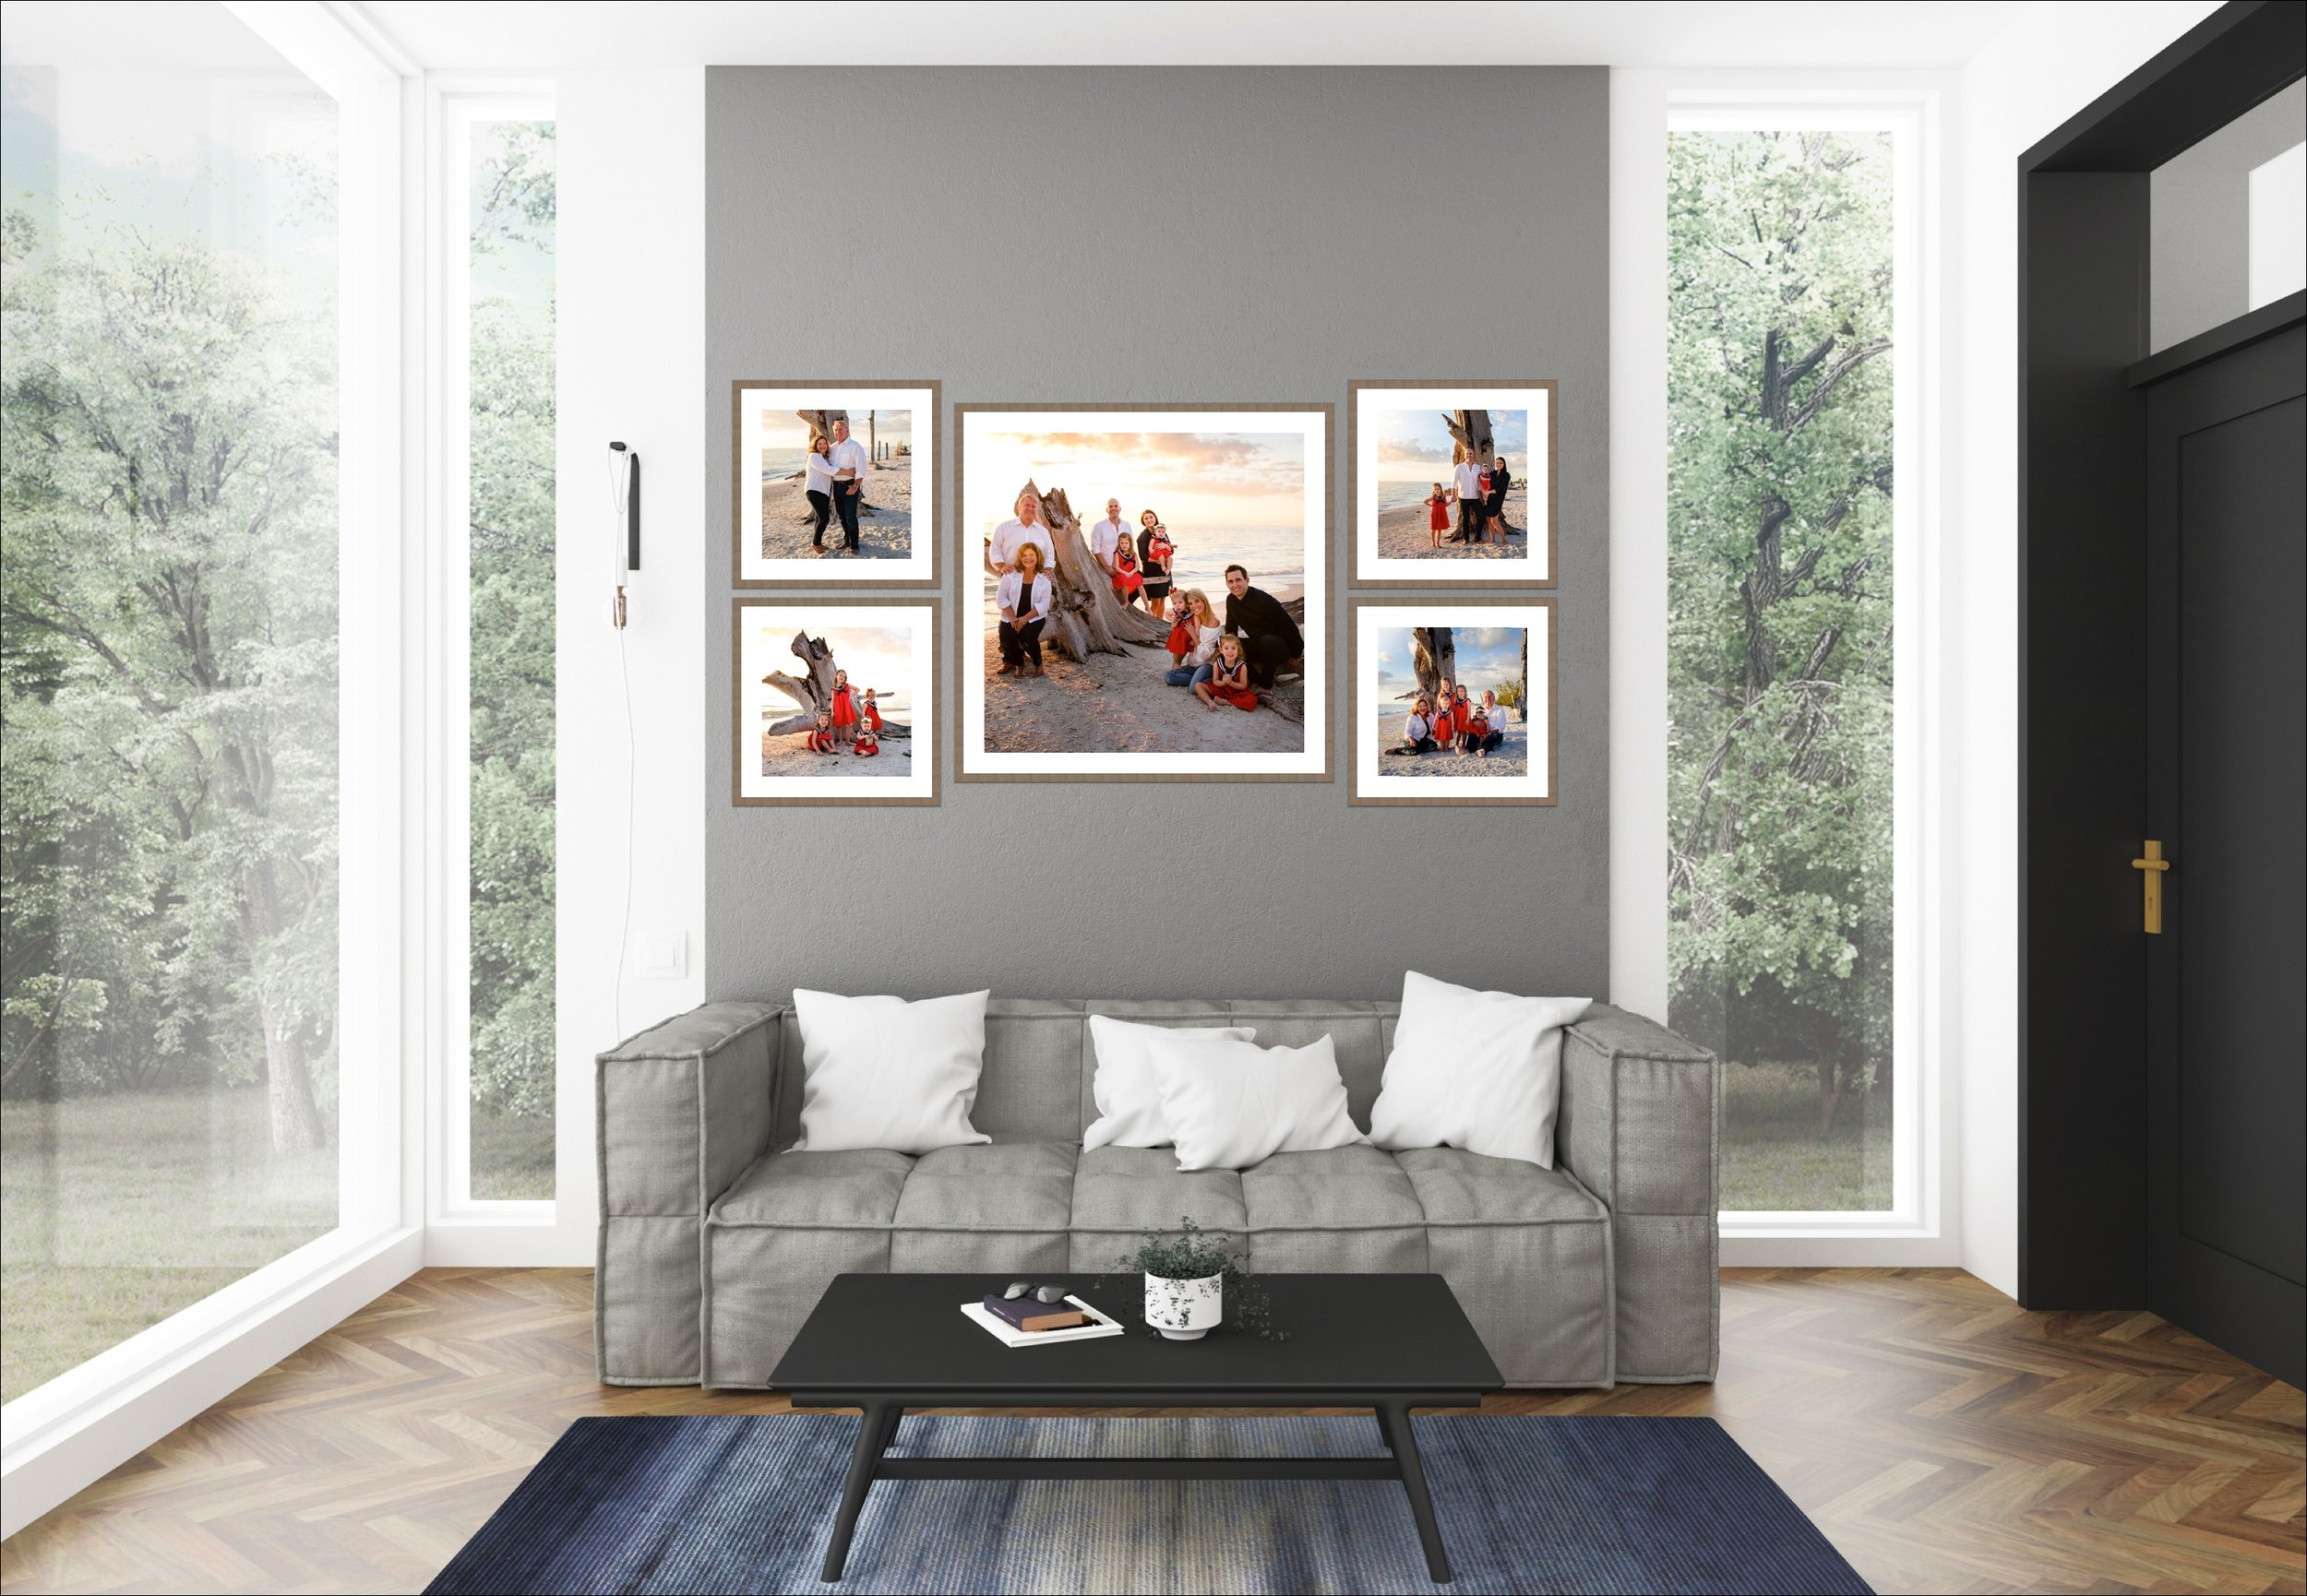 Framed Collections - We give you the ability to have museum quality framing and art matte in your home. Our framed collections can be customized to your space and arrive ready to be hung on your wall.